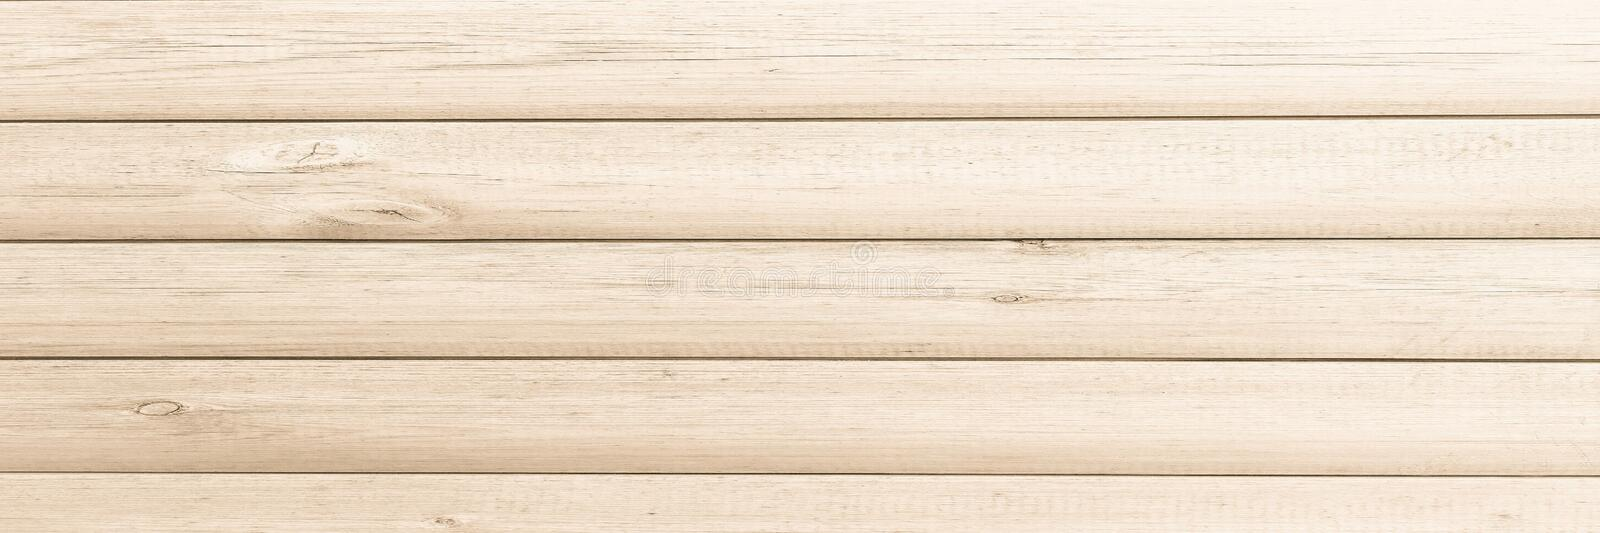 Wood texture background, wood planks. Grunge wood, painted wooden wall pattern. Wood texture background, wood planks. Grunge wood, painted wooden wall pattern stock photography